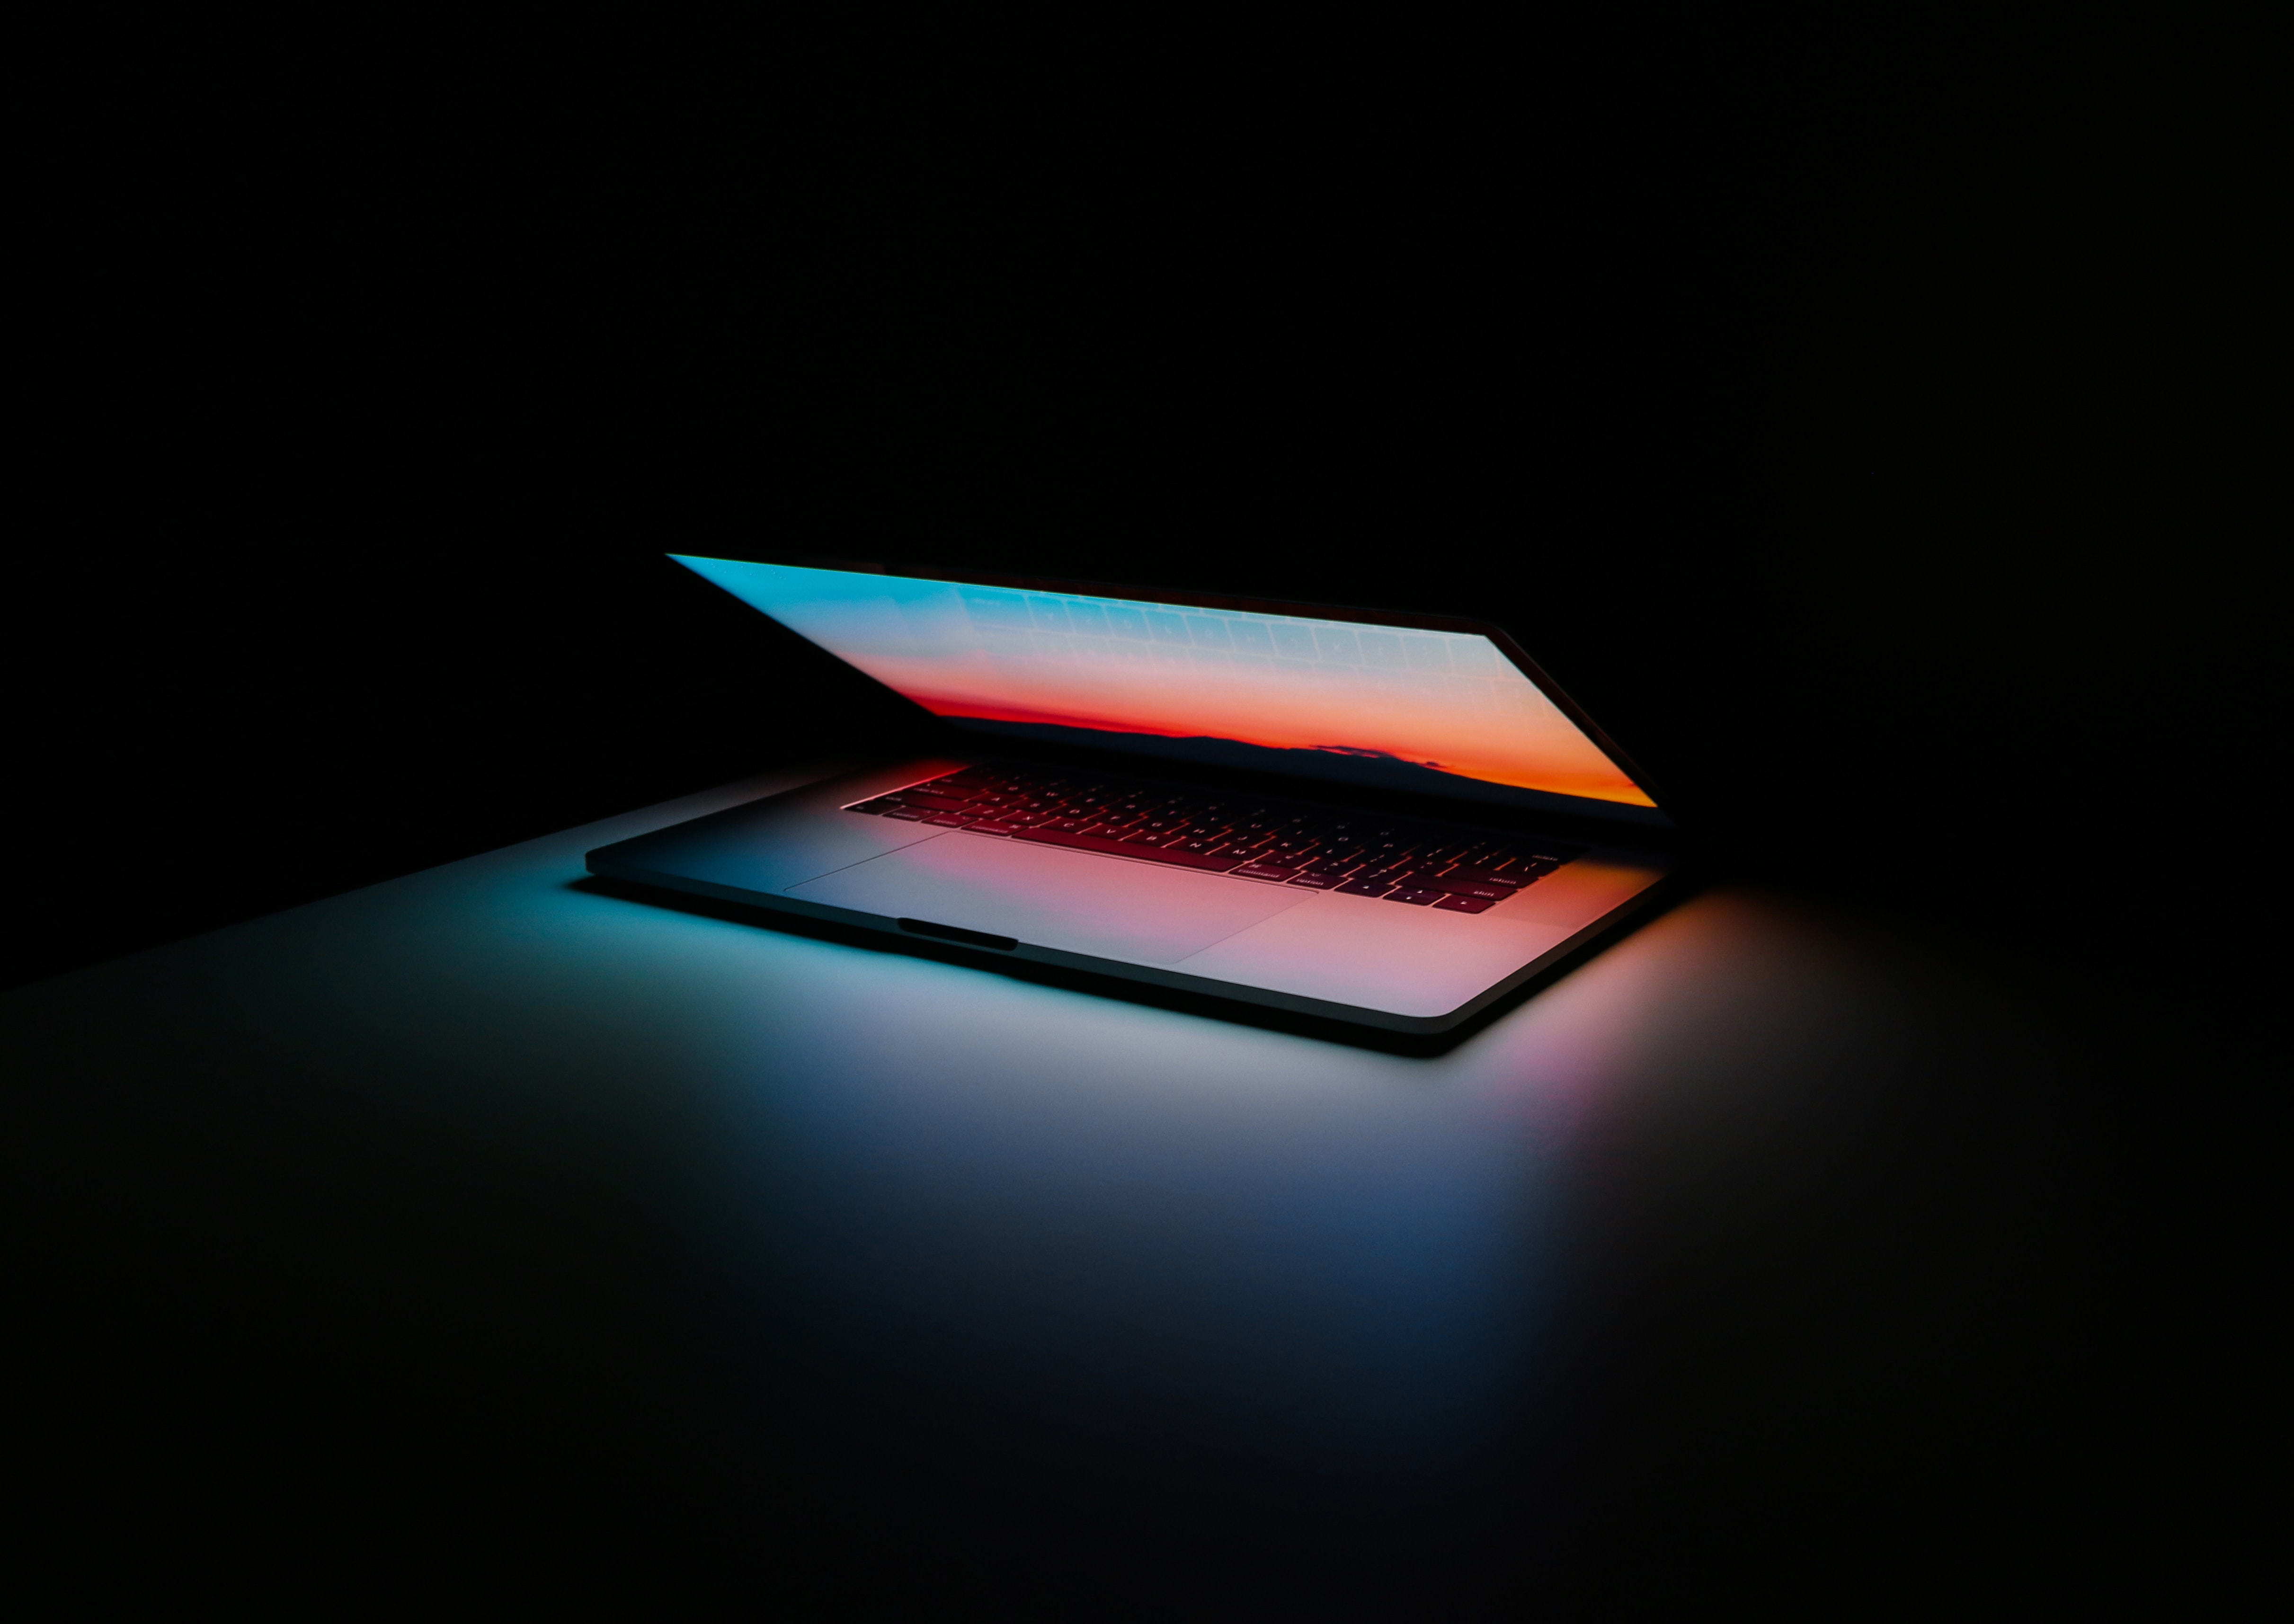 glowing computer